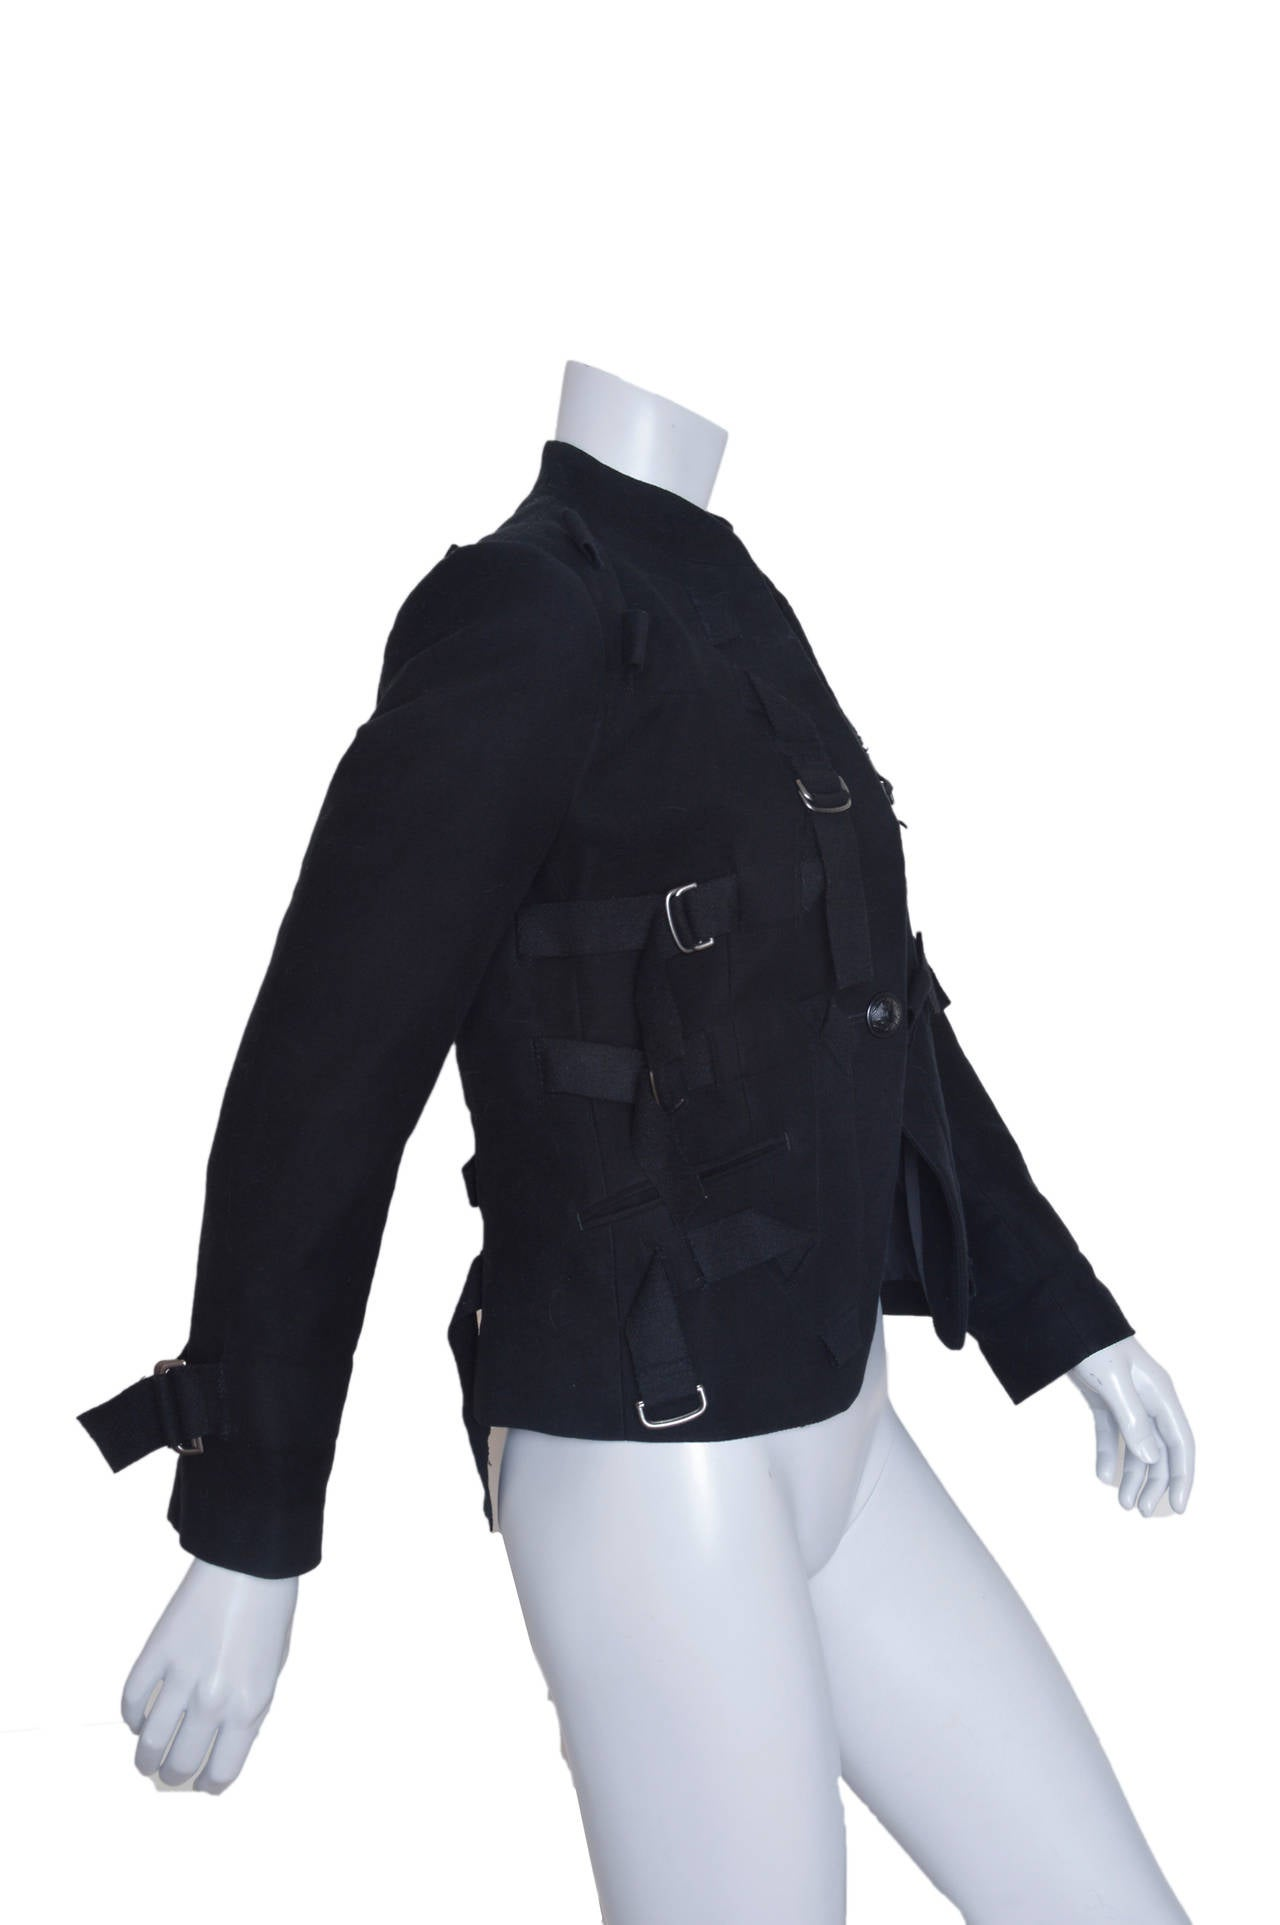 Crazy amazing Issey Miyake wool jacket. Slightly militaristic/slighty avant garde = totally inventive. Twisted and looped cotton straps and pewter adjustable buckles adorn the front, side and back. Adjustable straps at wrists. Embellished